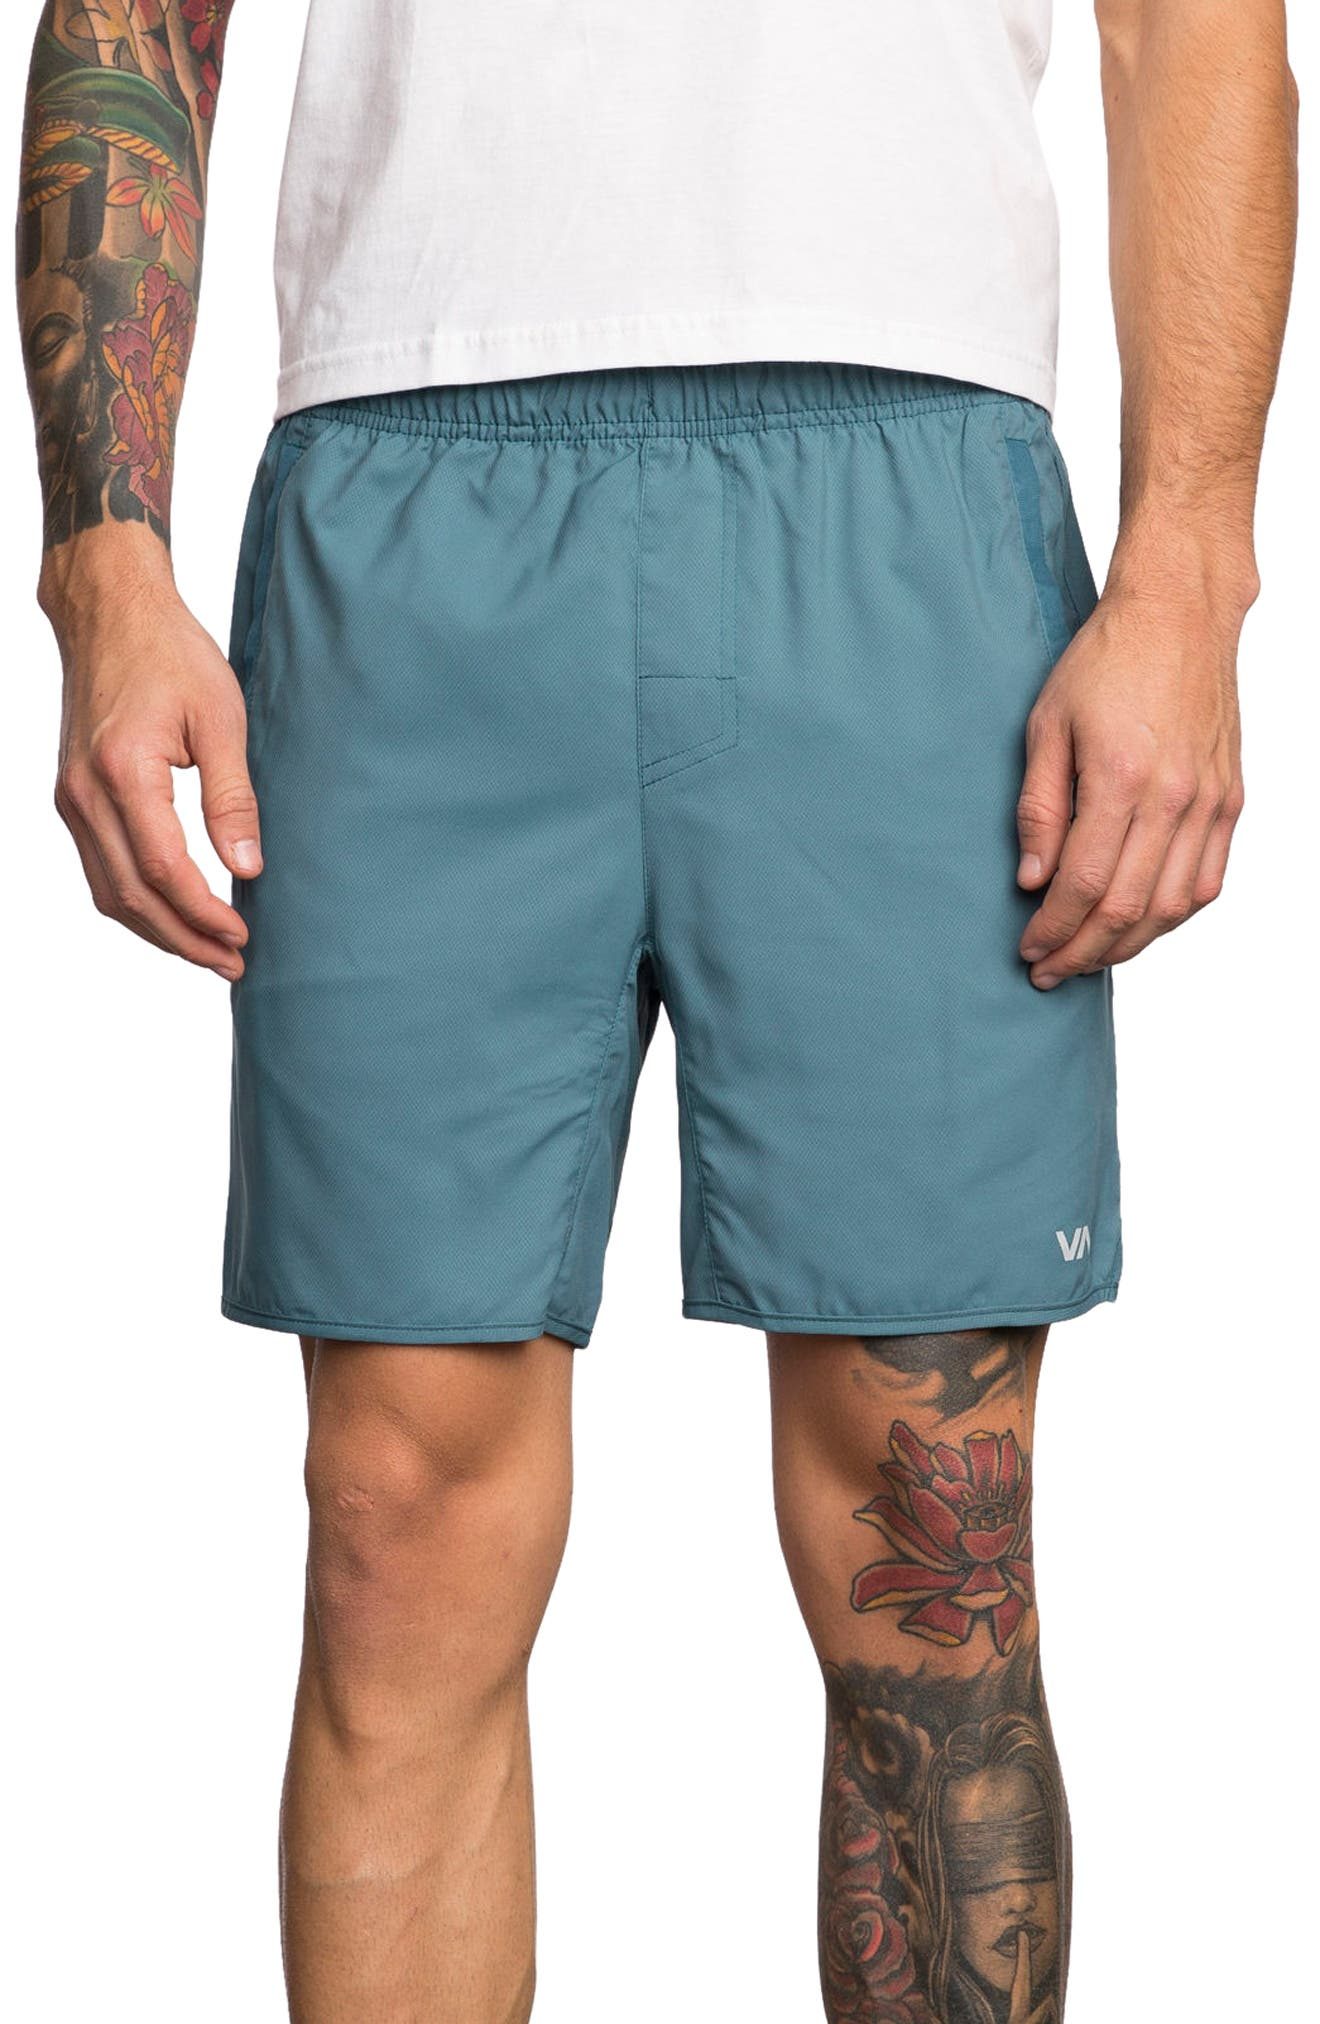 Yogger III Athletic Shorts,                         Main,                         color, Desert Blue